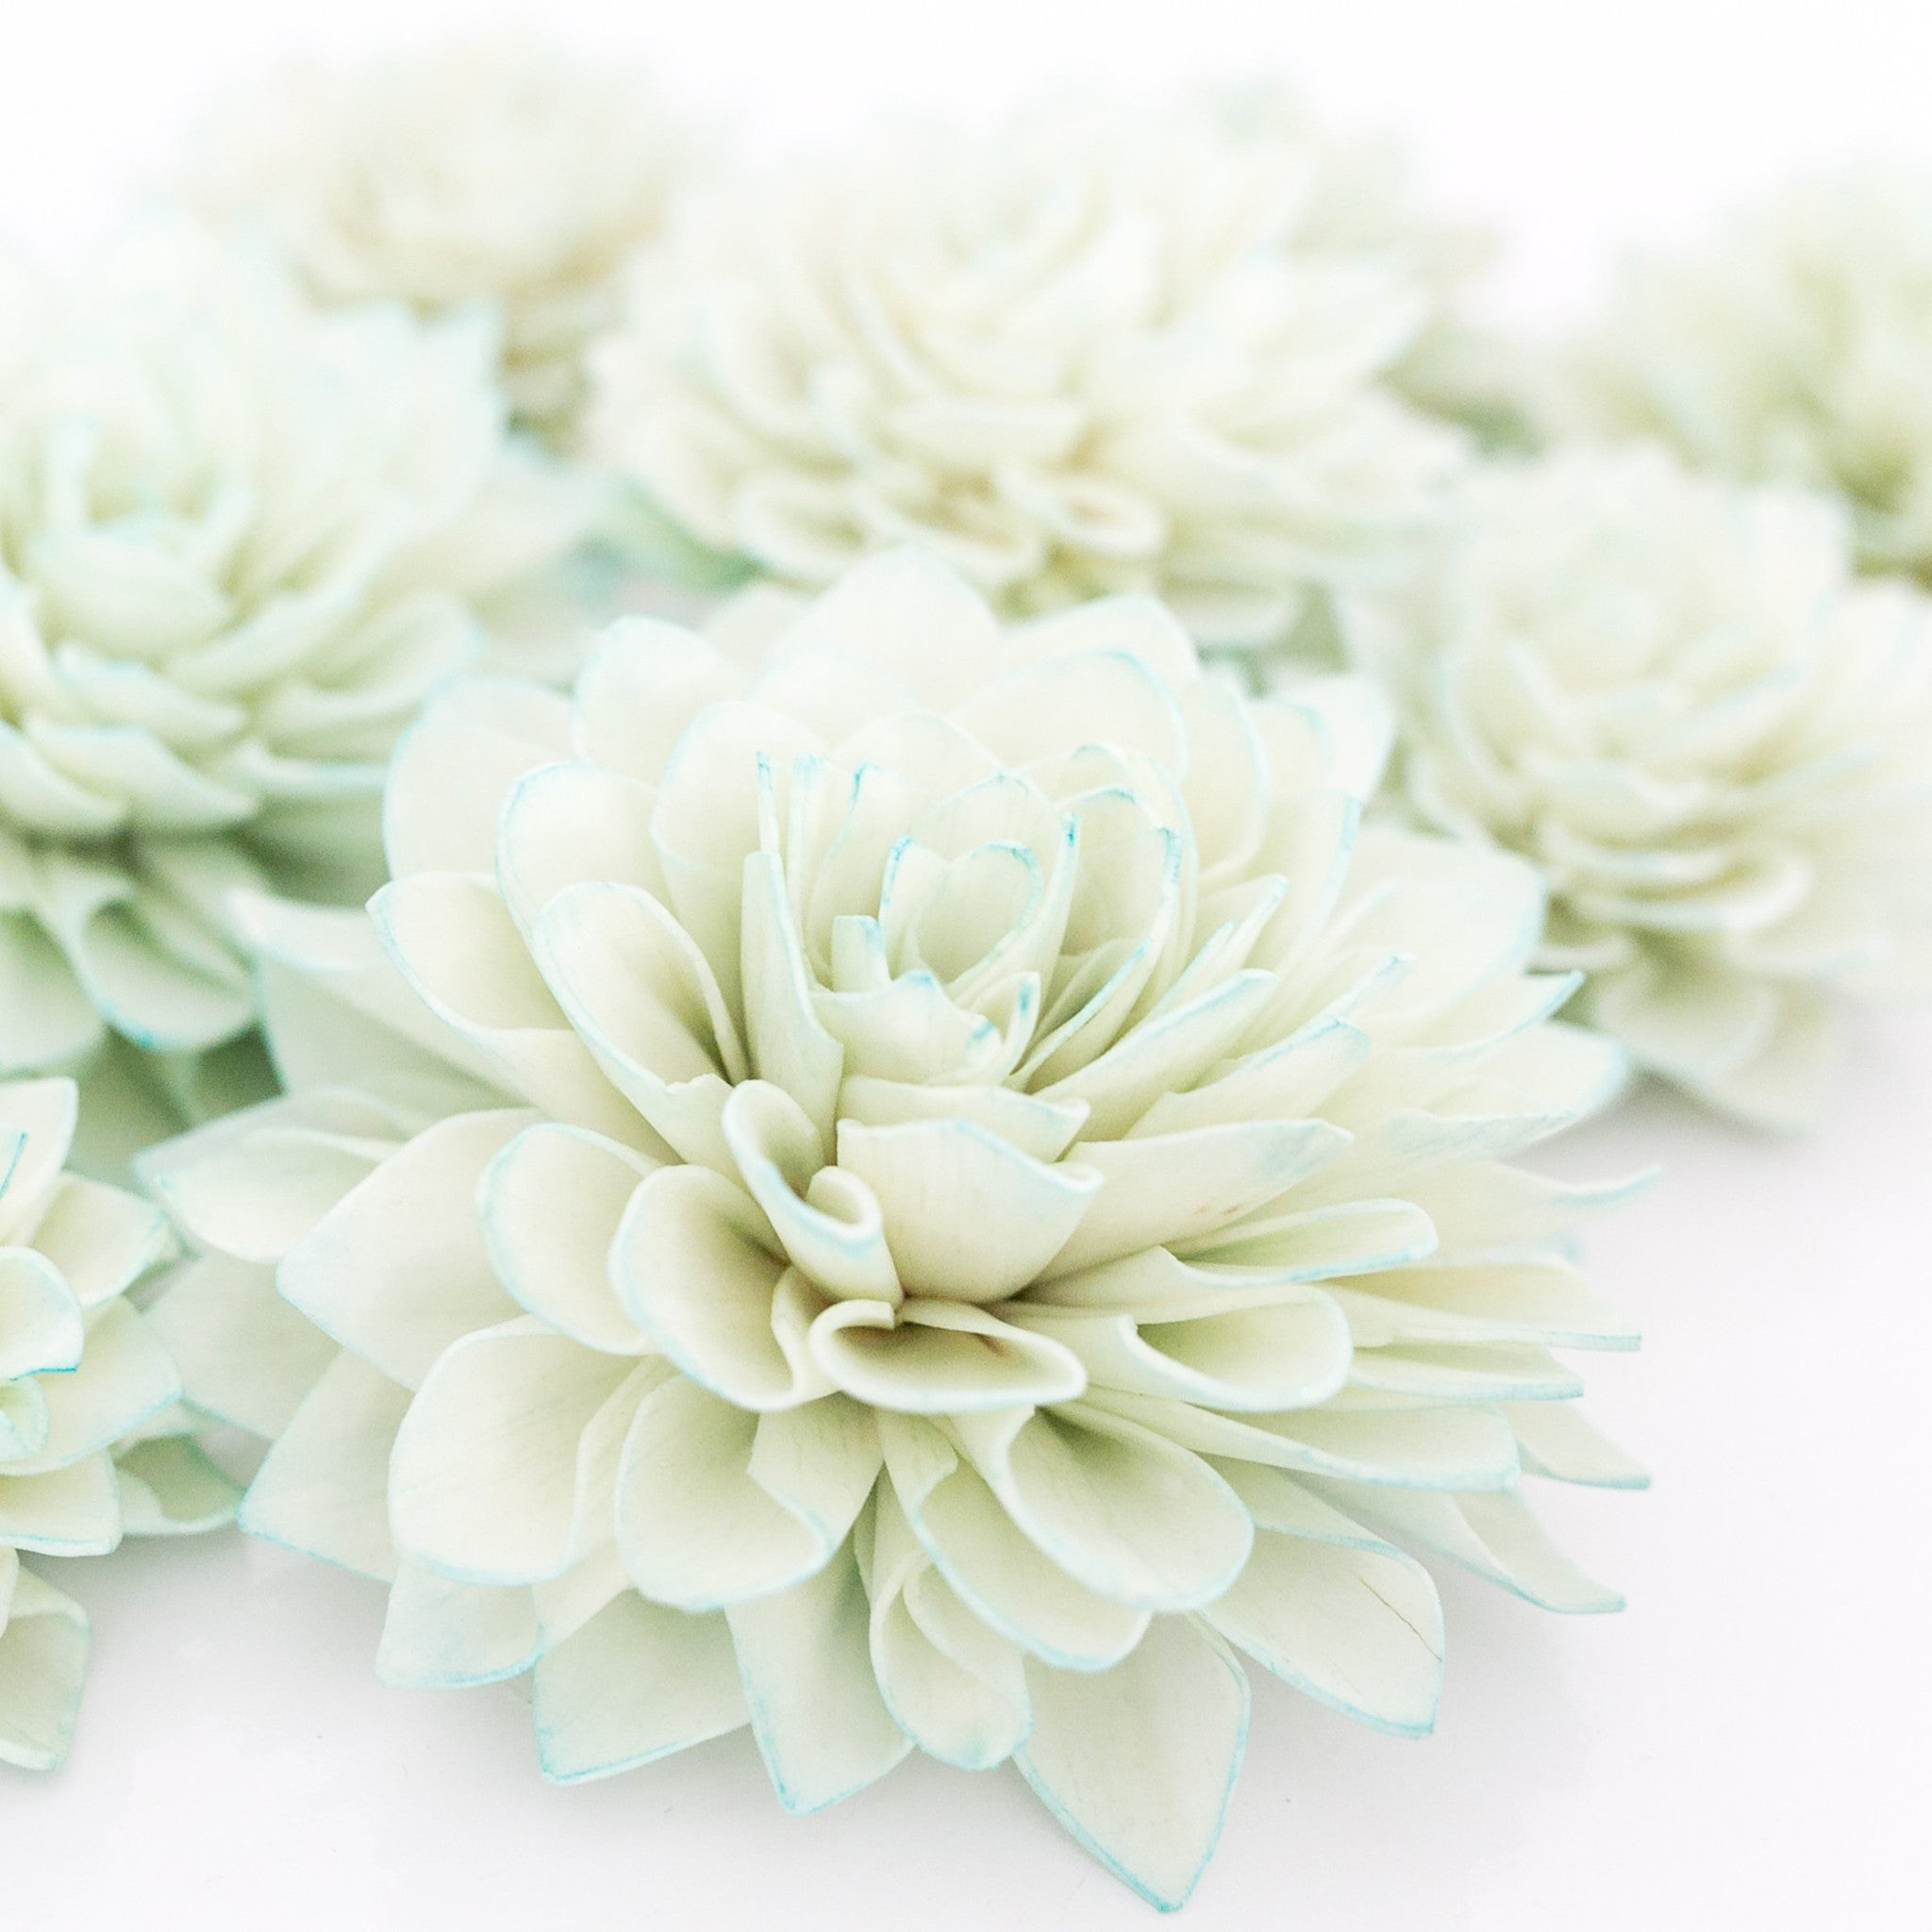 10 Mint Wooden Flowers Wedding Decorations Wedding Flowers 10 Mint Wooden  Flowers Wedding Decorations Wedding Flowers